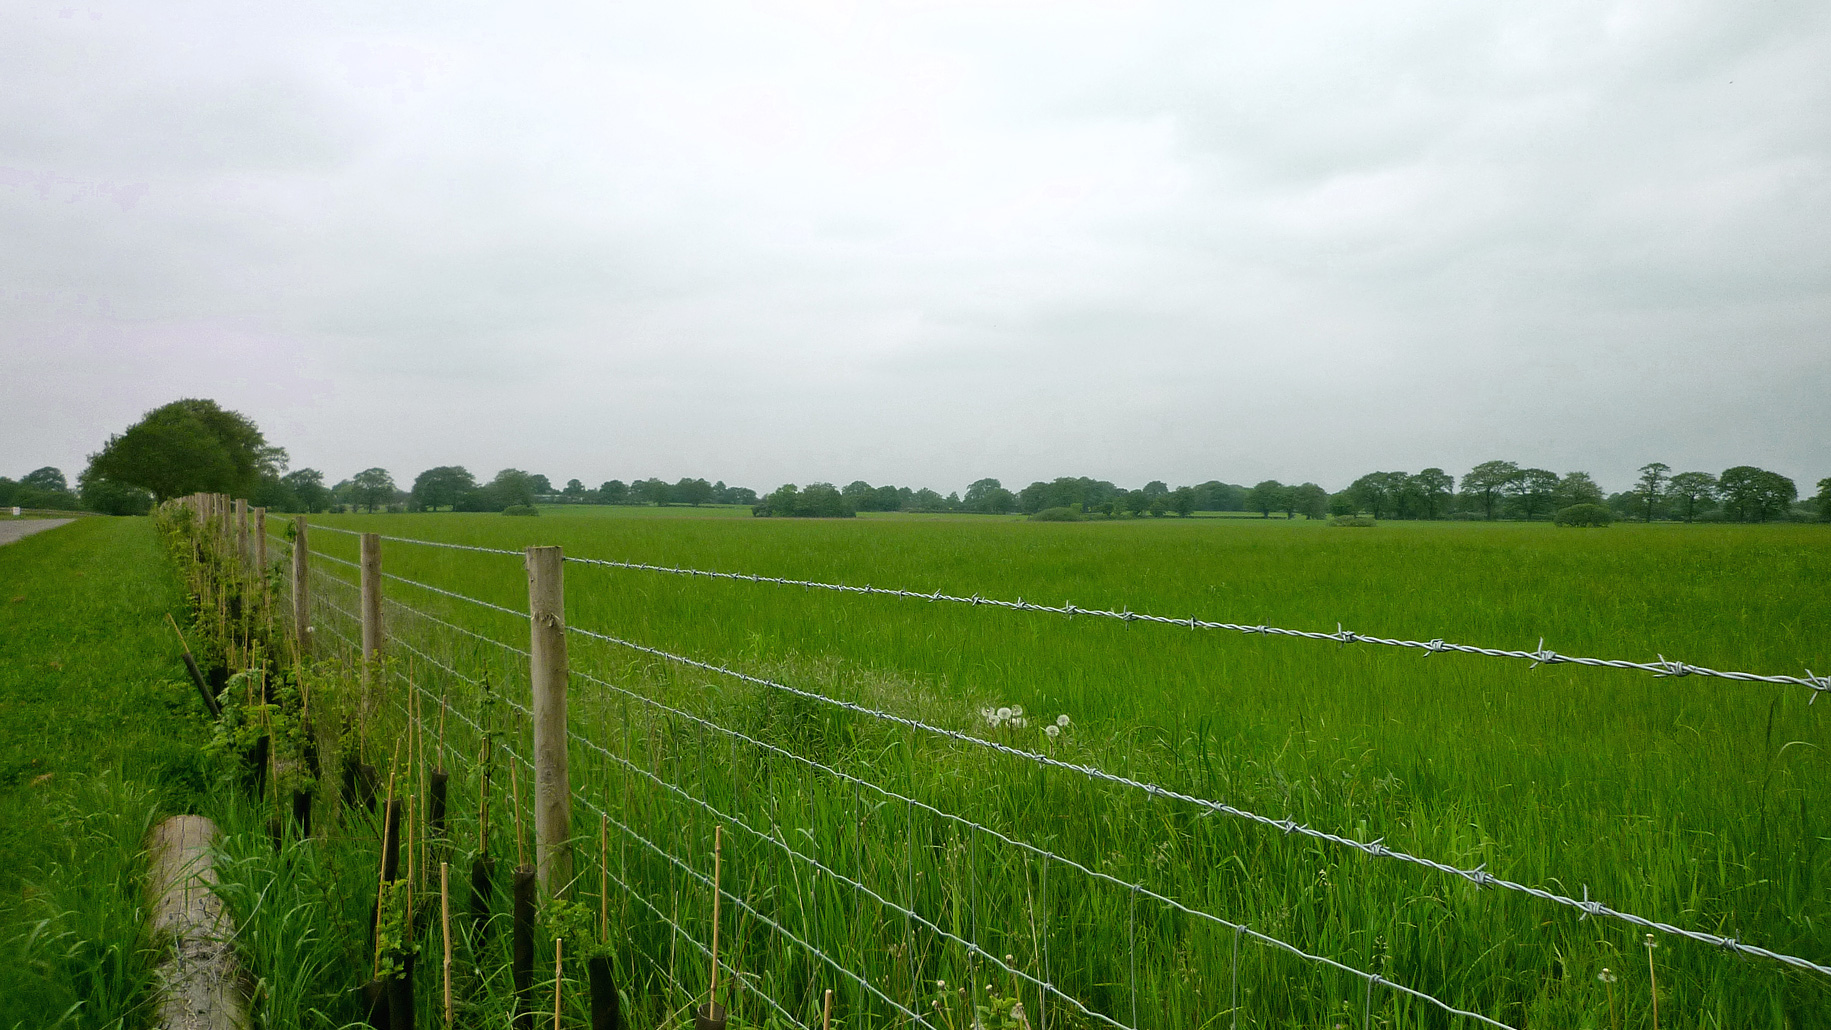 Paddock land for sale in Solihull, Birmingham